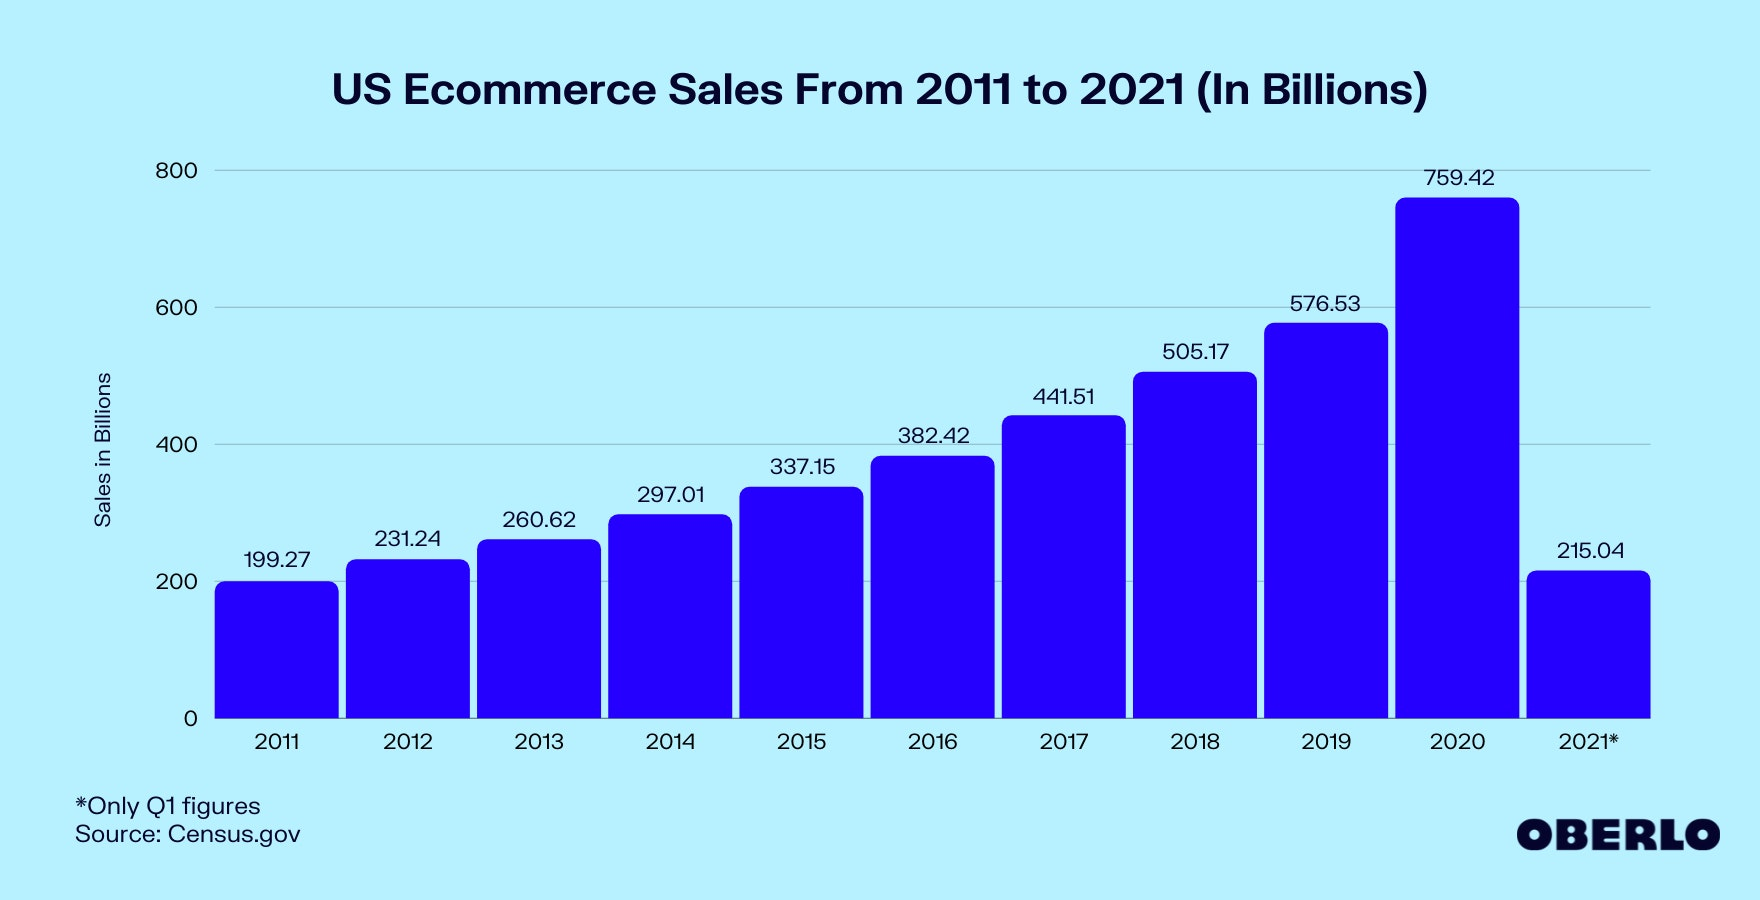 Graph of US Ecommerce Sales From 2011 to 2021 (In Billions)